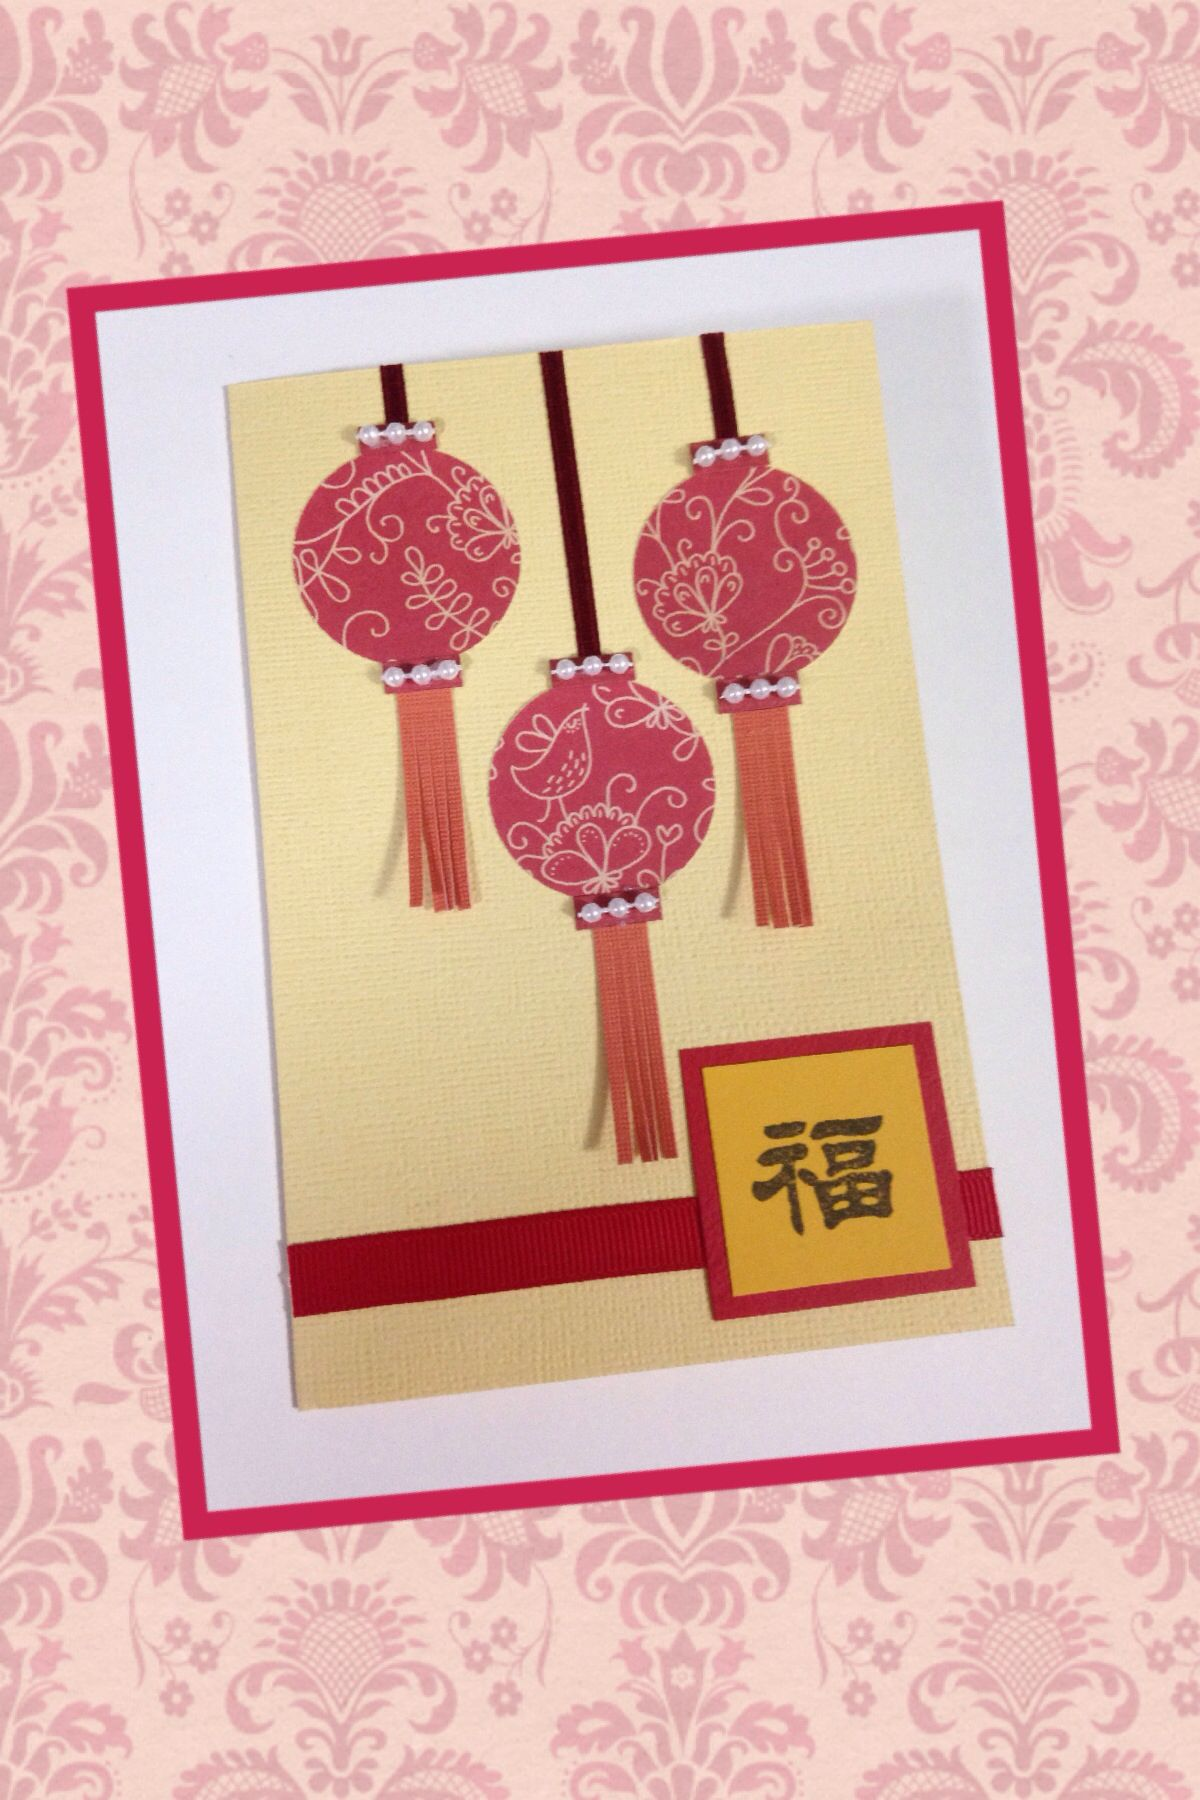 Chinese New Year Greeting Card With Images New Year Cards